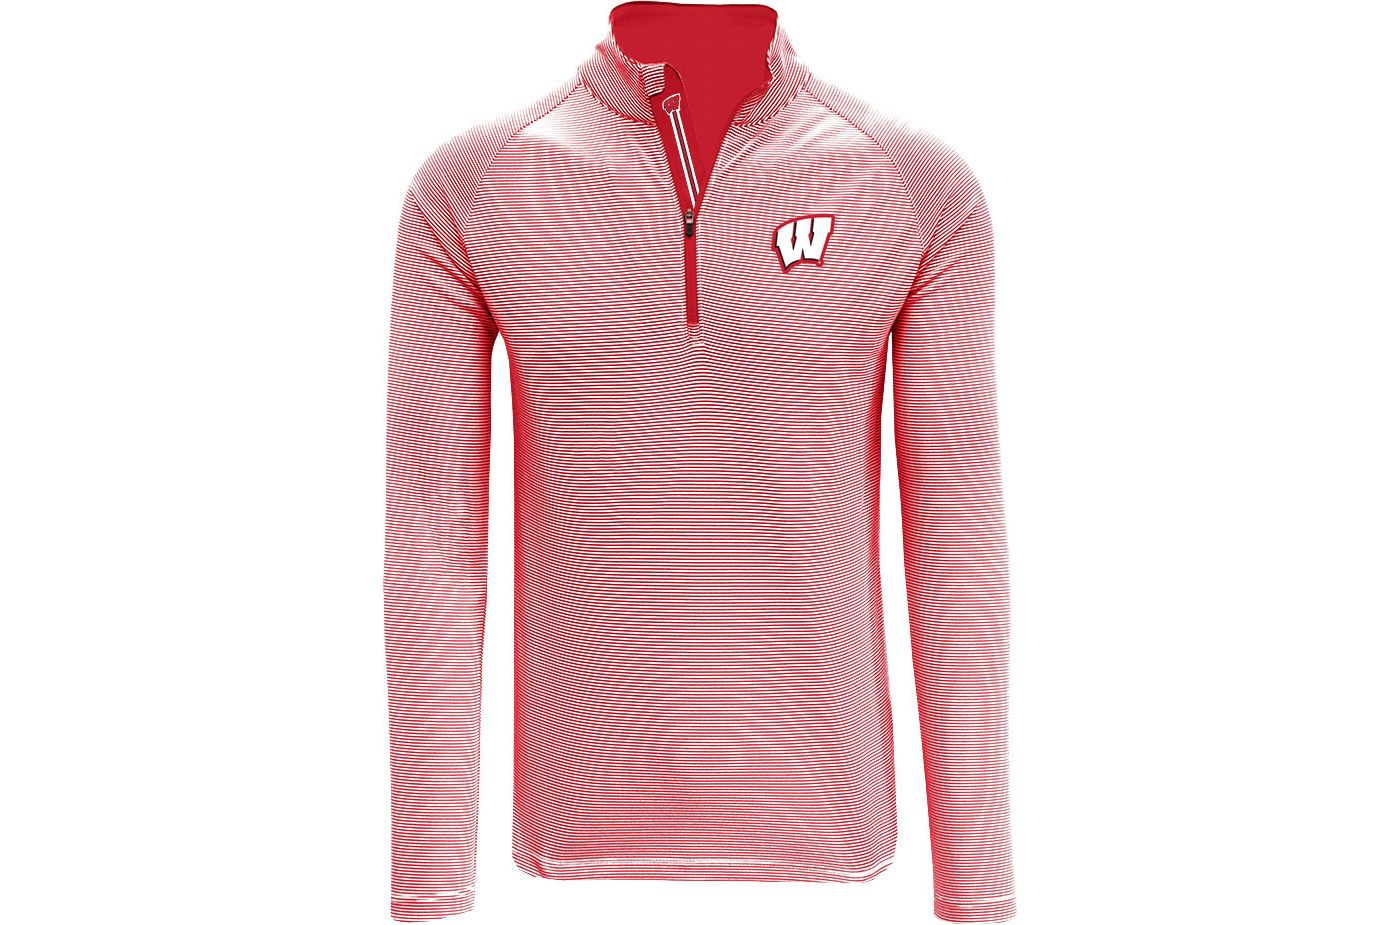 Levelwear Men's Wisconsin Badgers Red Orion Quarter-Zip Shirt